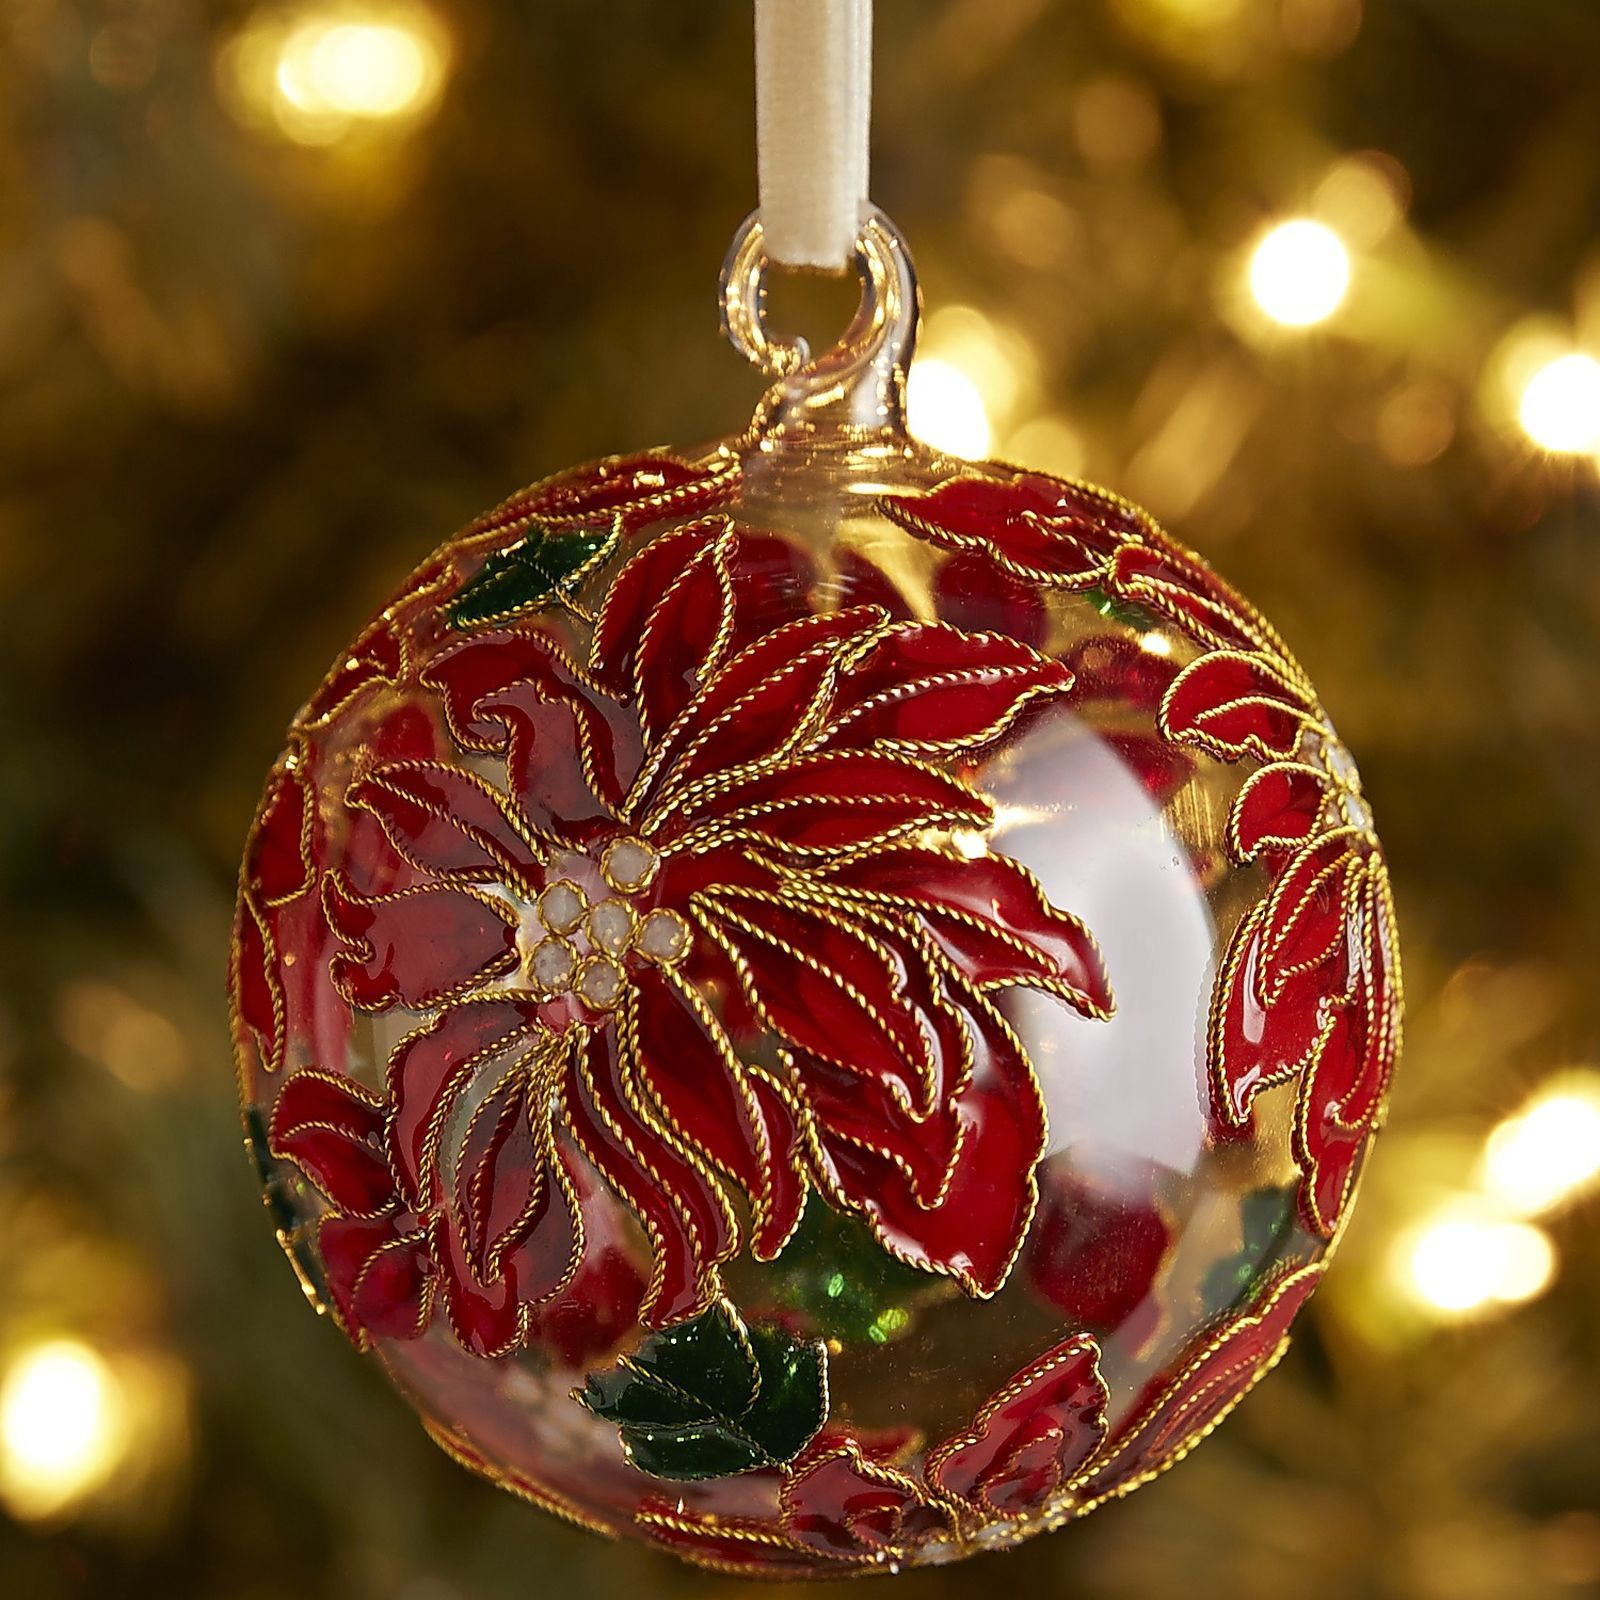 How To Decorate A Christmas Tree With Balls Cloisonne Poinsettia Ball Ornament  Red  Pier 1 Imports